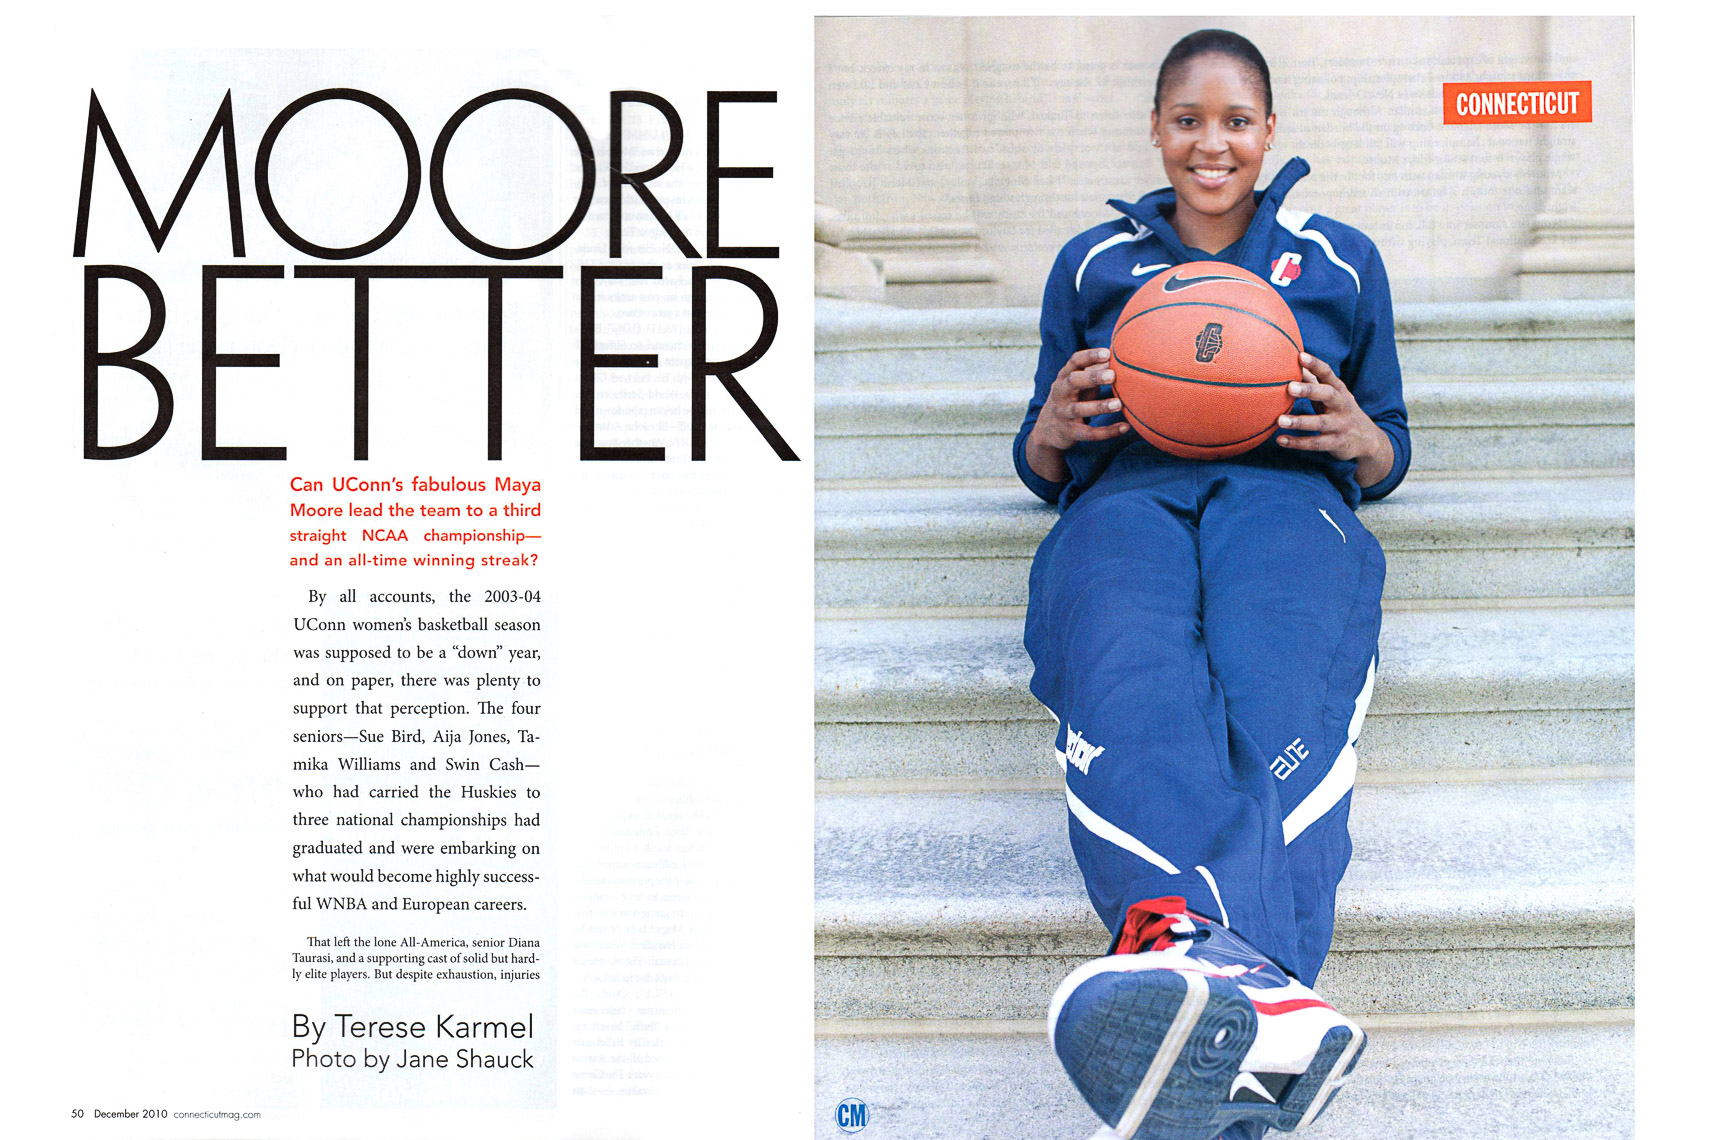 0040_0001_maya_moore_Connecticut_magazine_hartford_ct_editorial_sports_celebrity_corporate_business_photographer_photojane